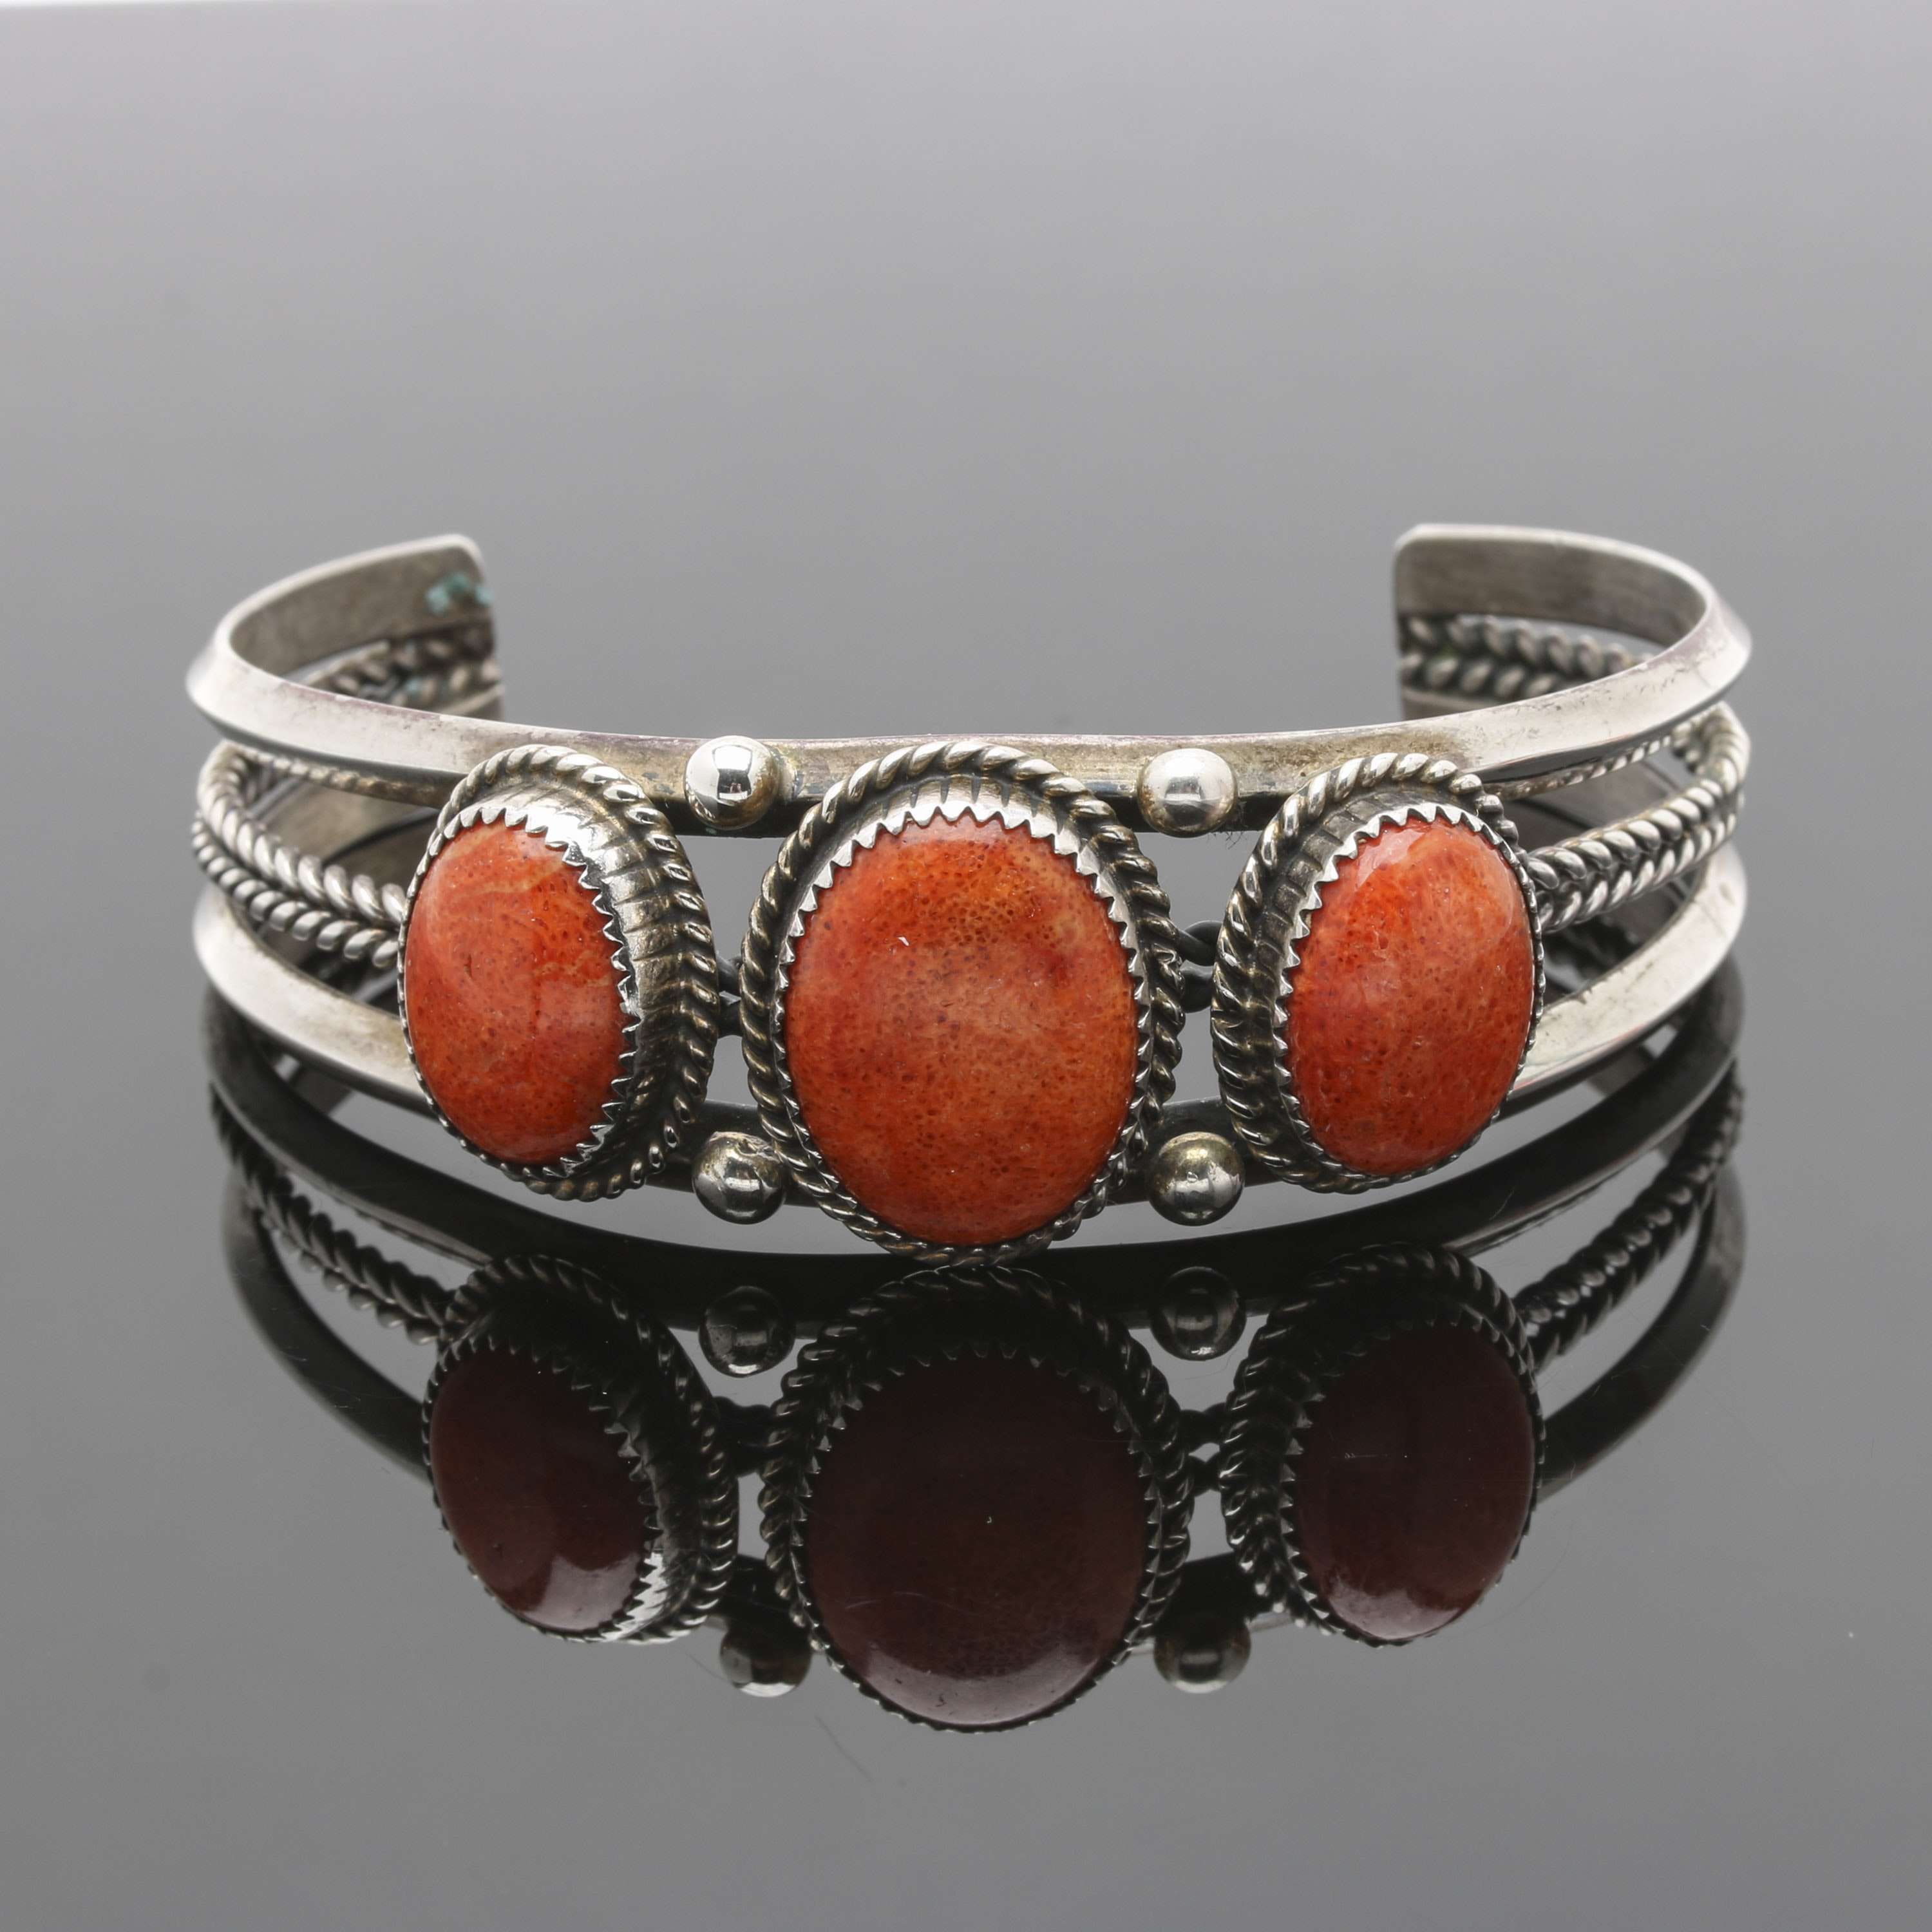 Robert Becenti Navajo Diné Sterling Silver Coral Cuff Bracelet